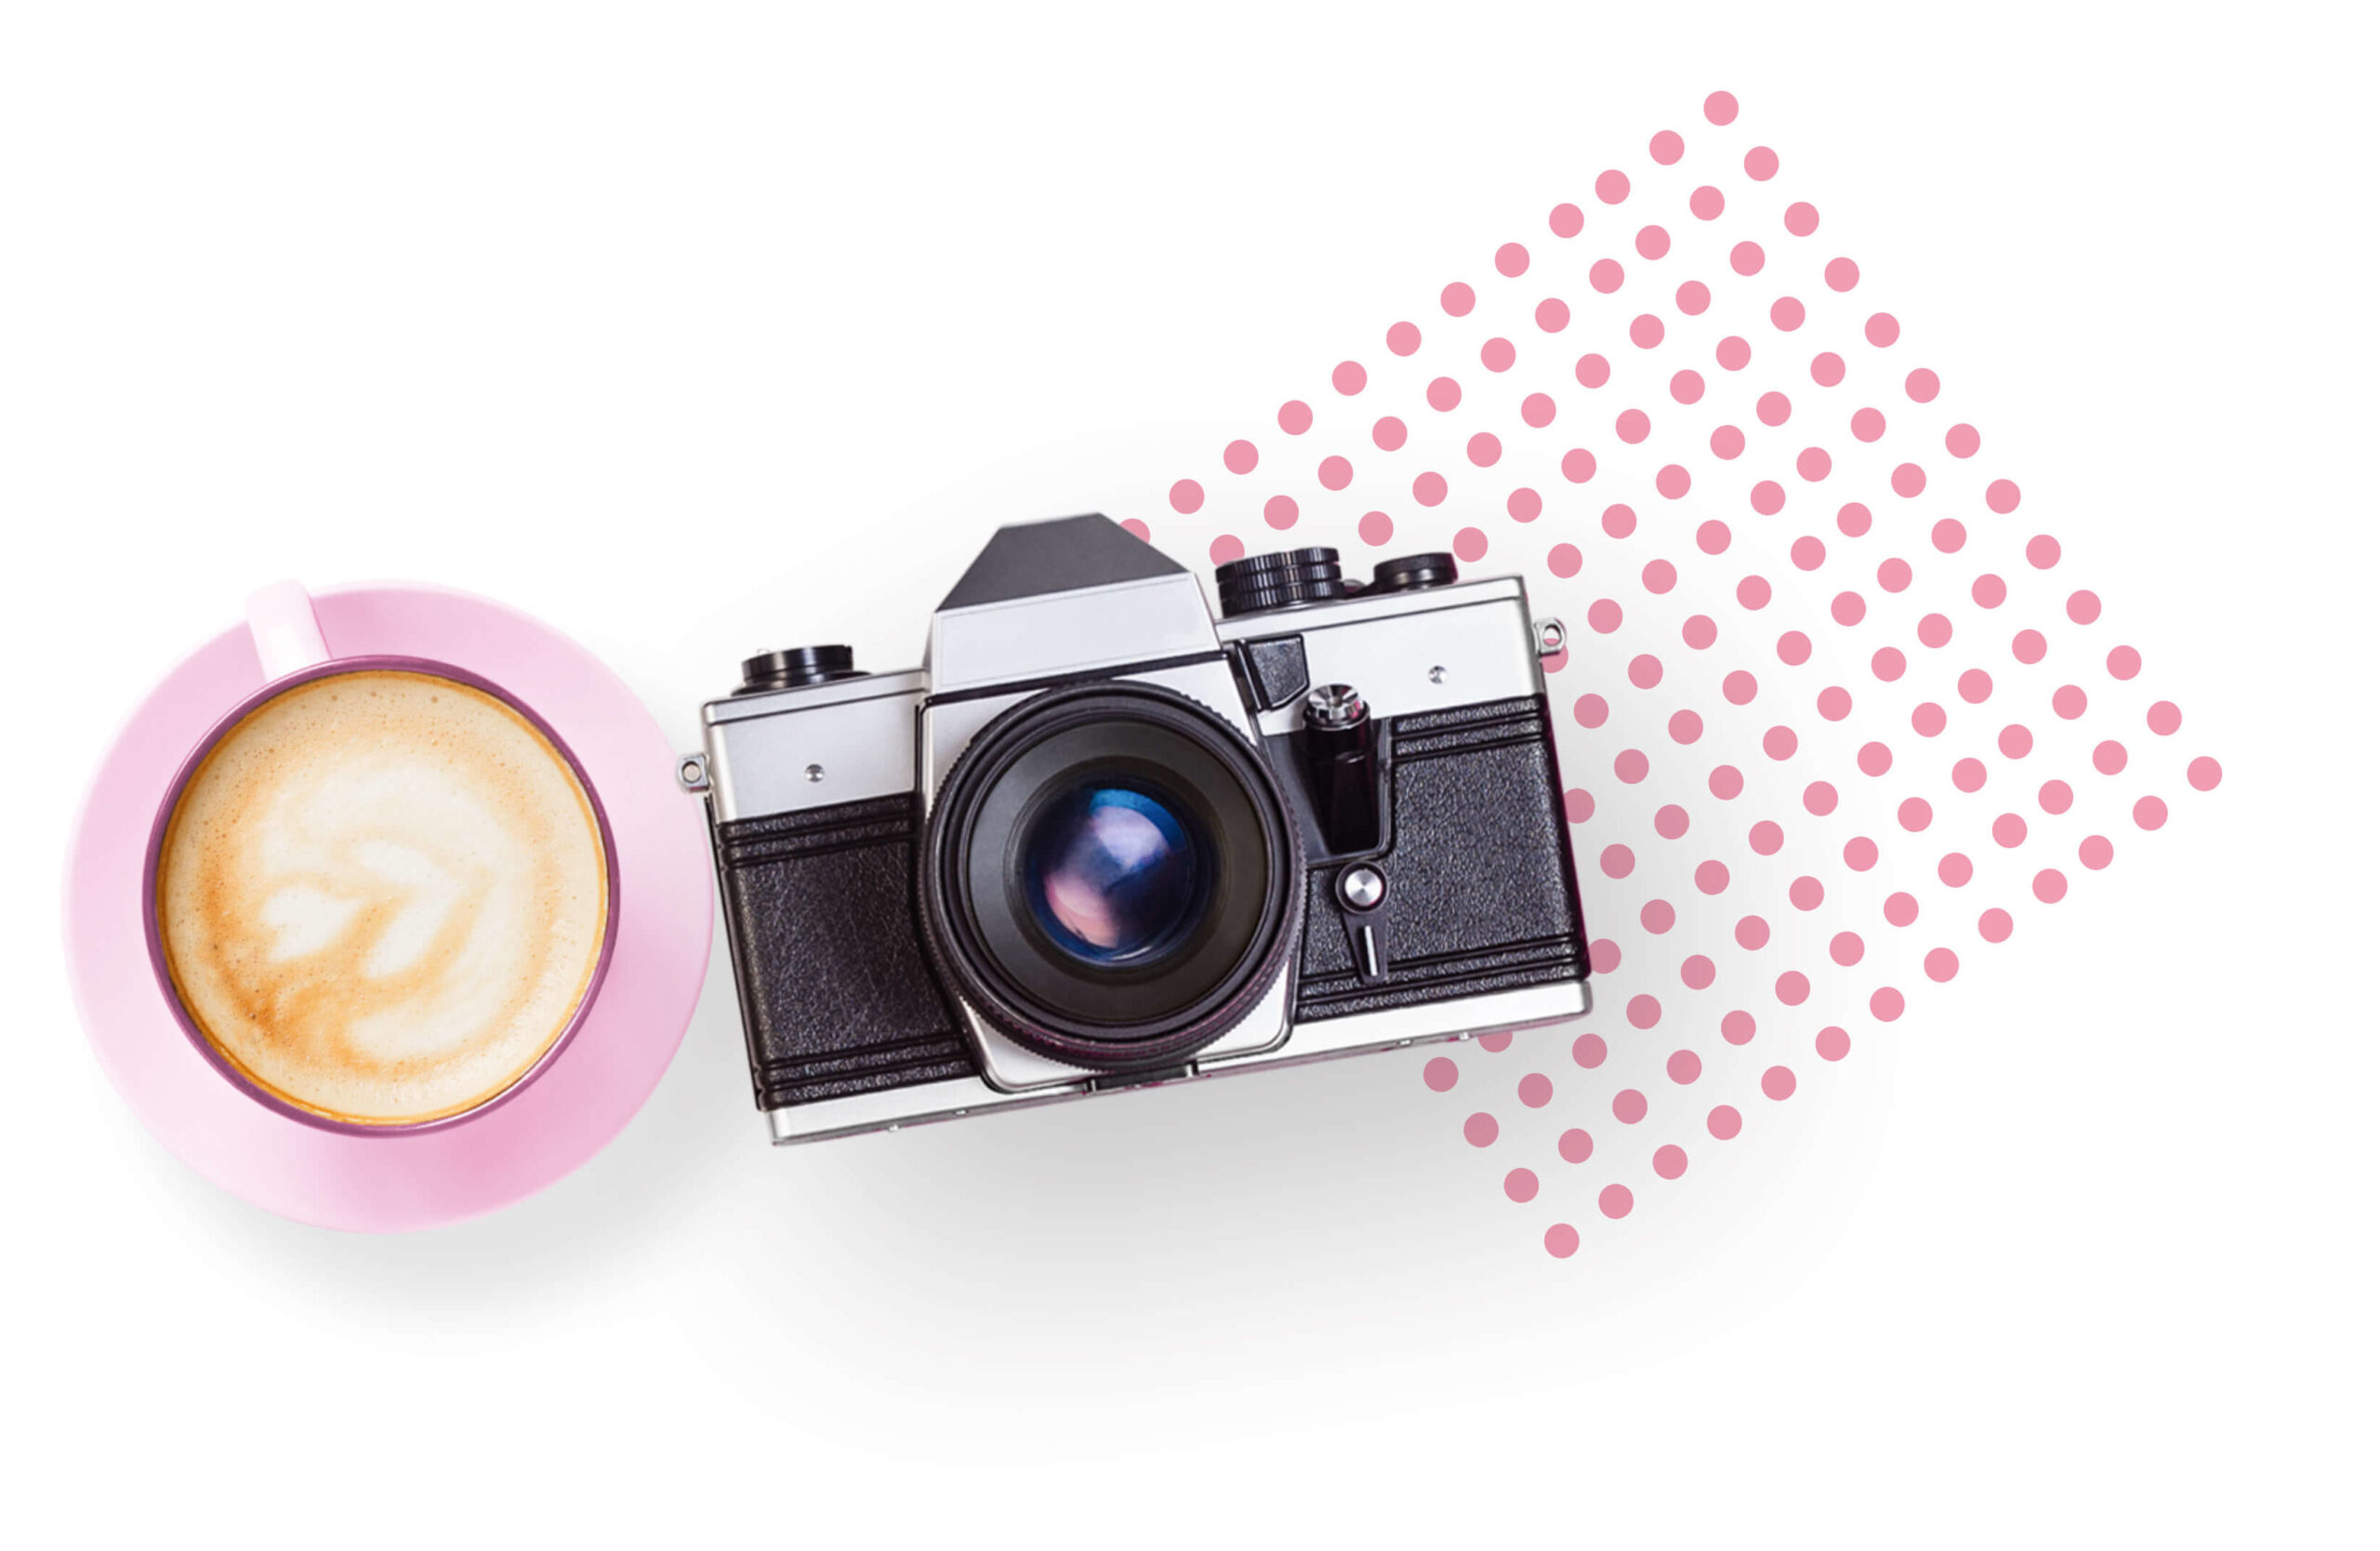 Camera and Latte